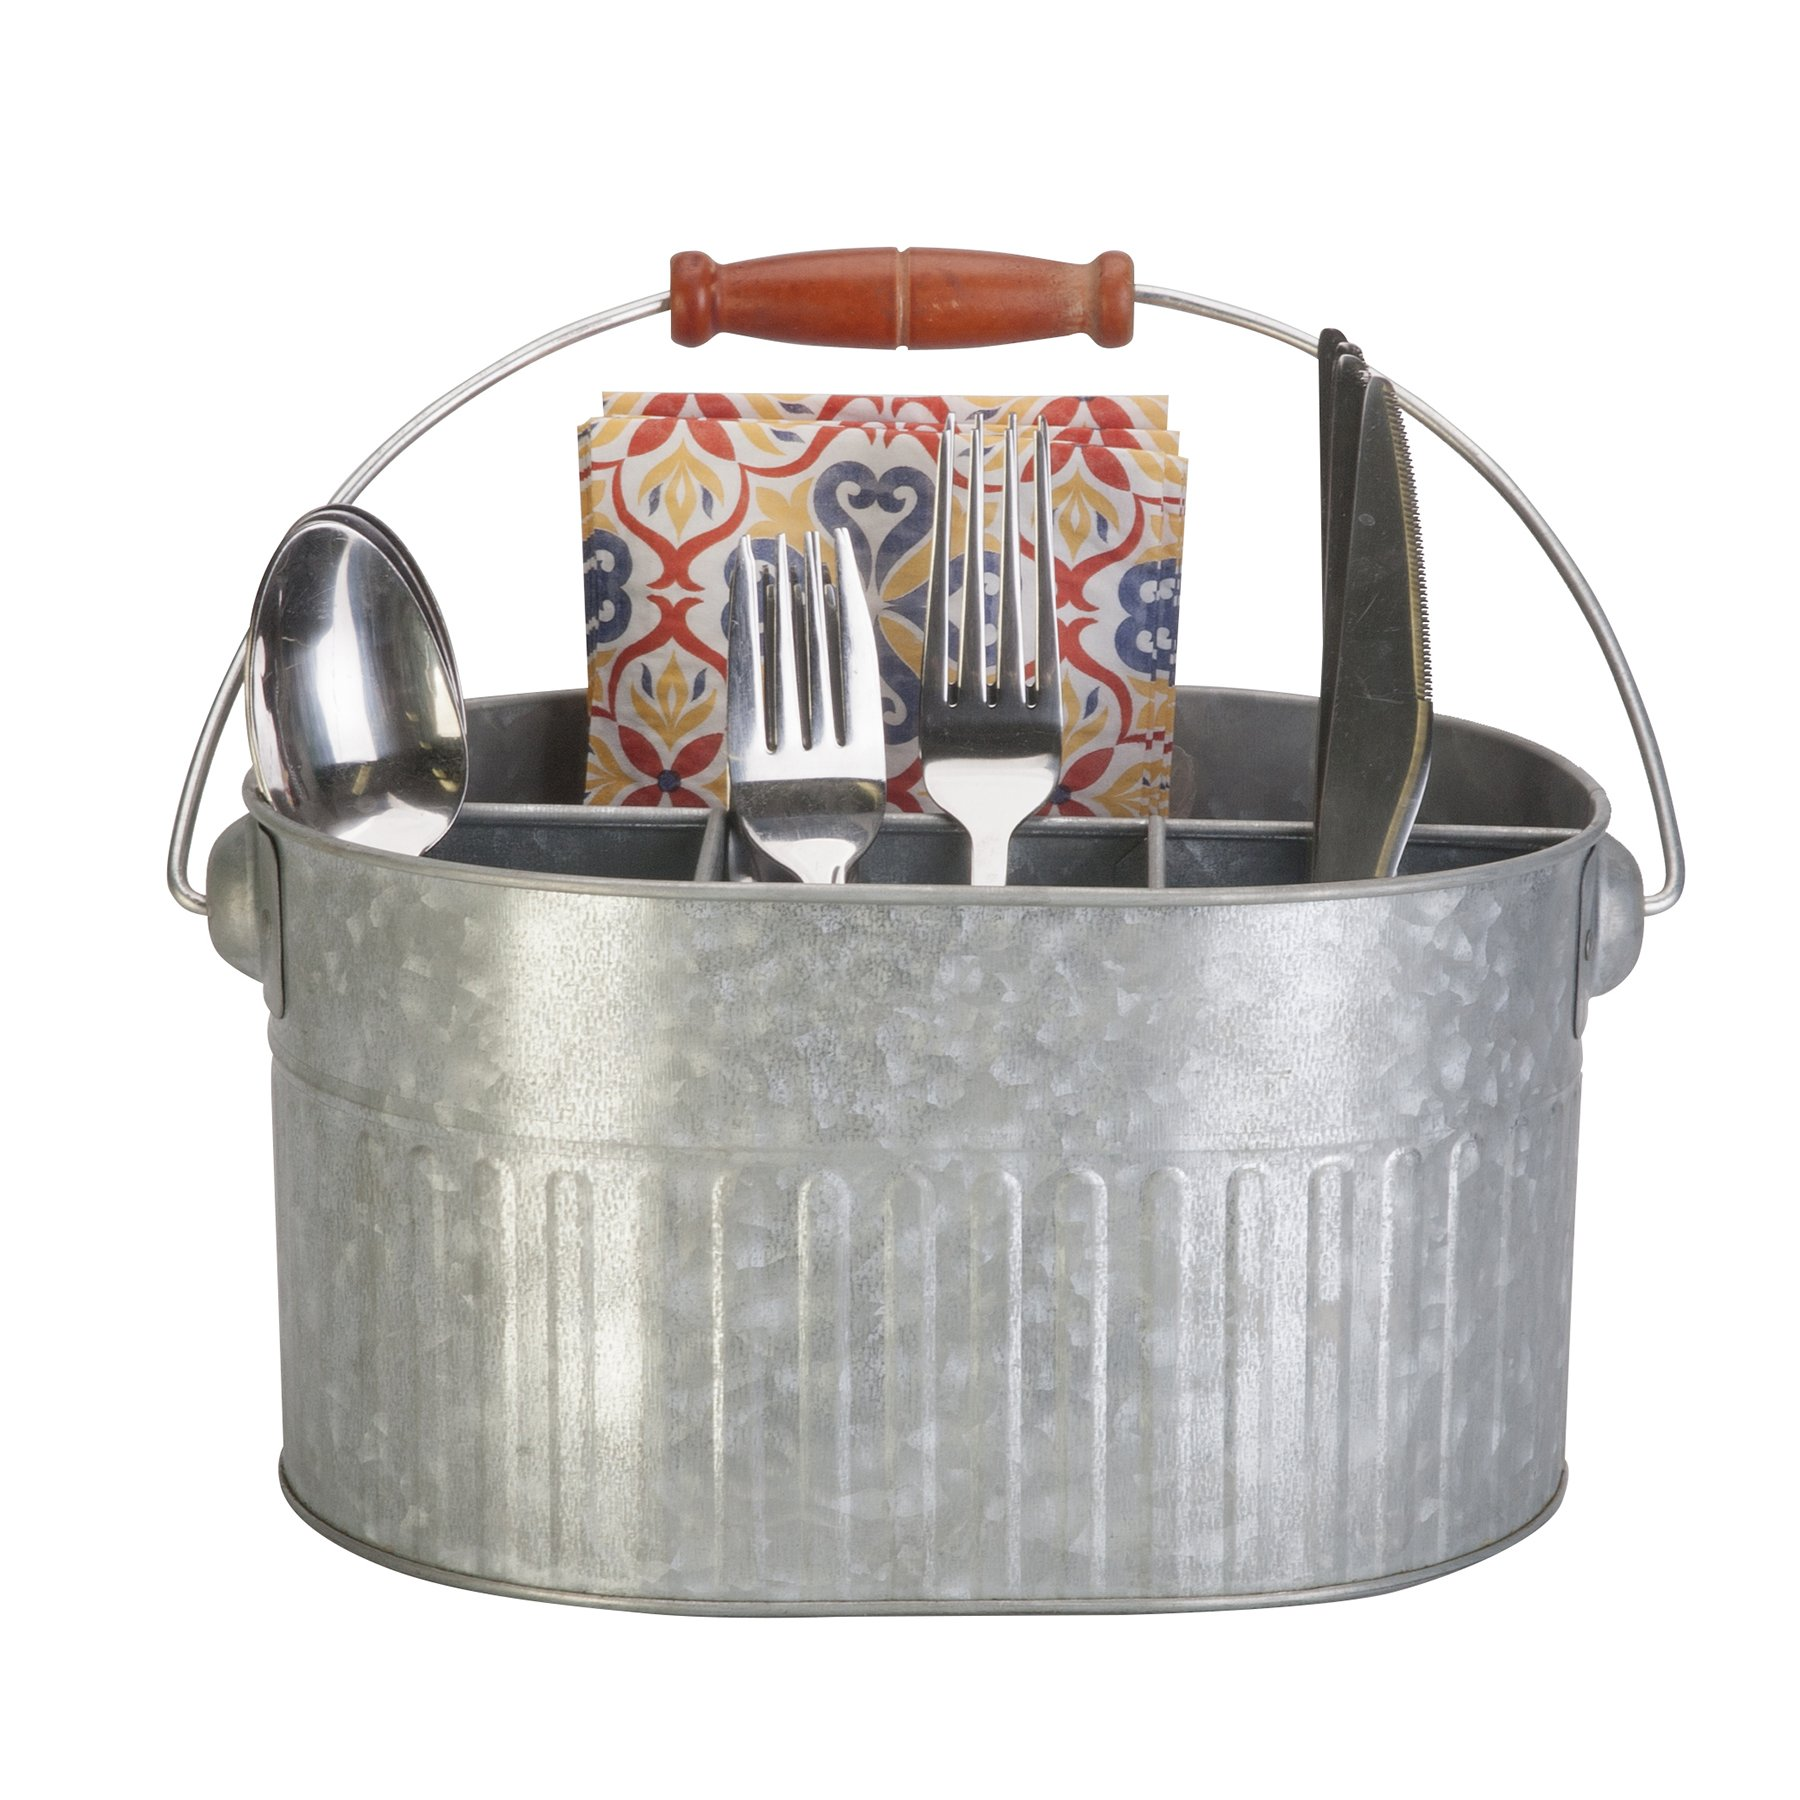 Panacea 83243 Silverware & Planter Caddy Bucket Garden Accessories, 11 in. x 7 in. x 9.5 in, Vintage Galvanized by Panacea